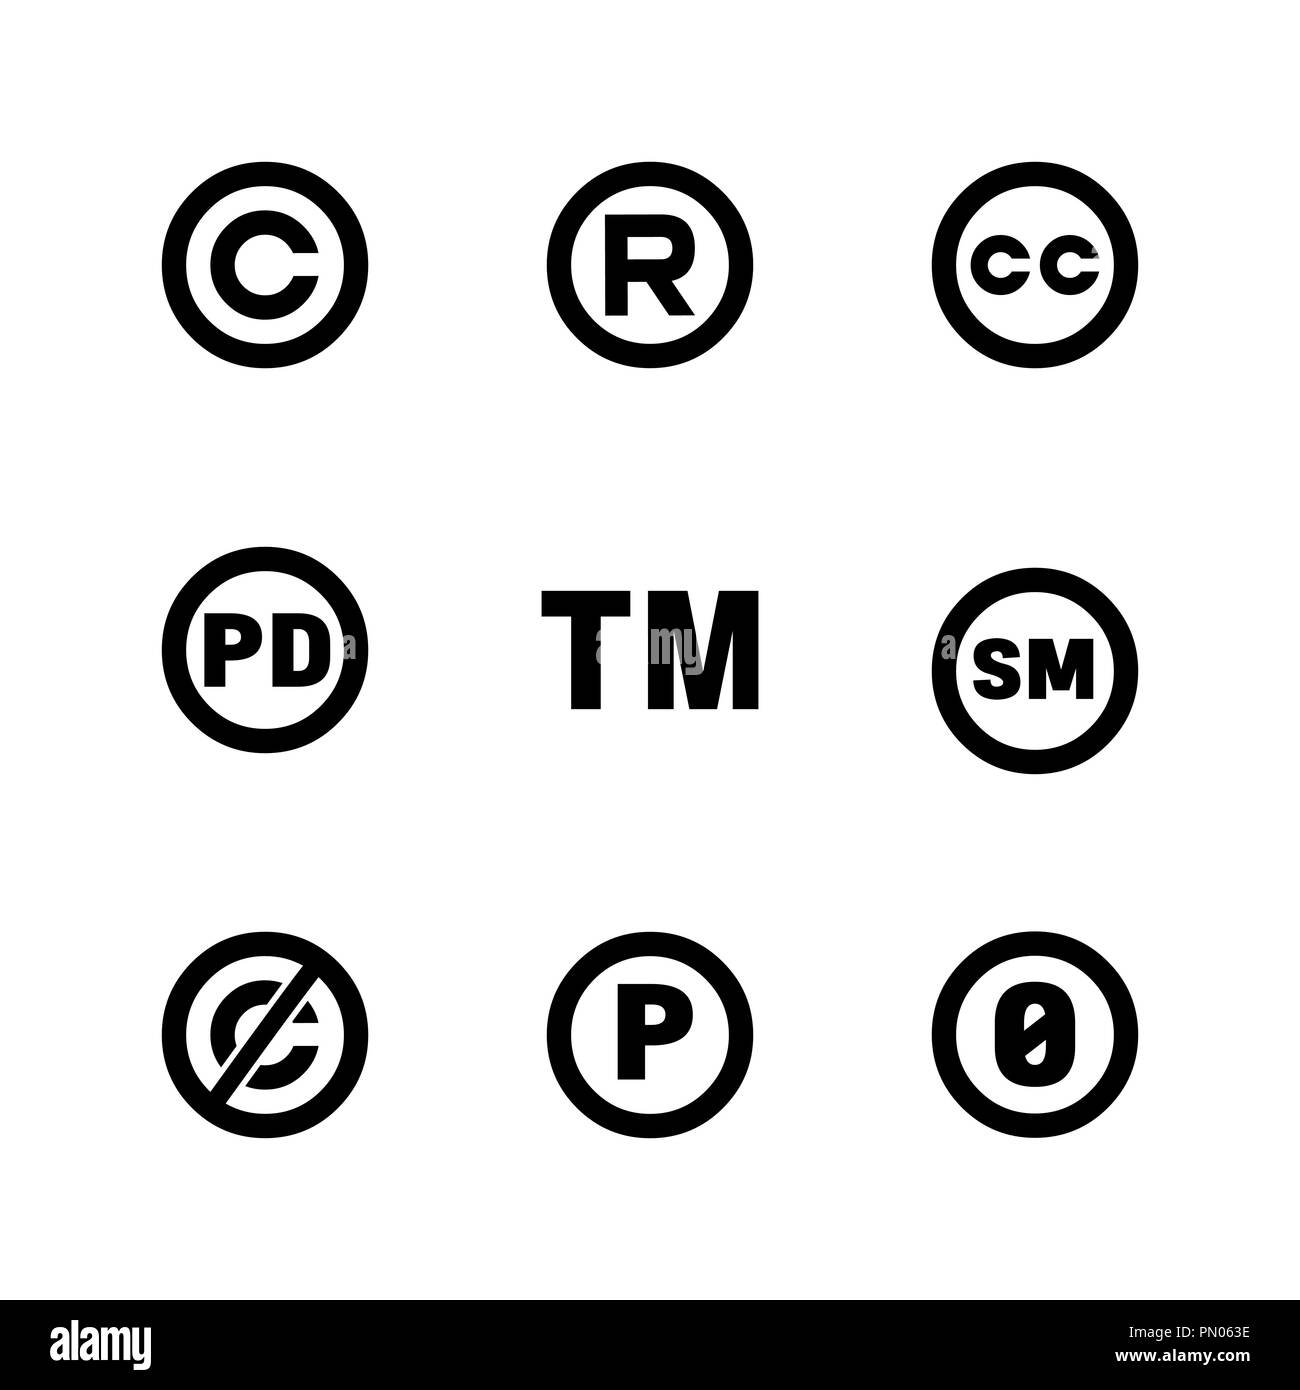 Trademark Symbol Black And White Stock Photos Images Alamy